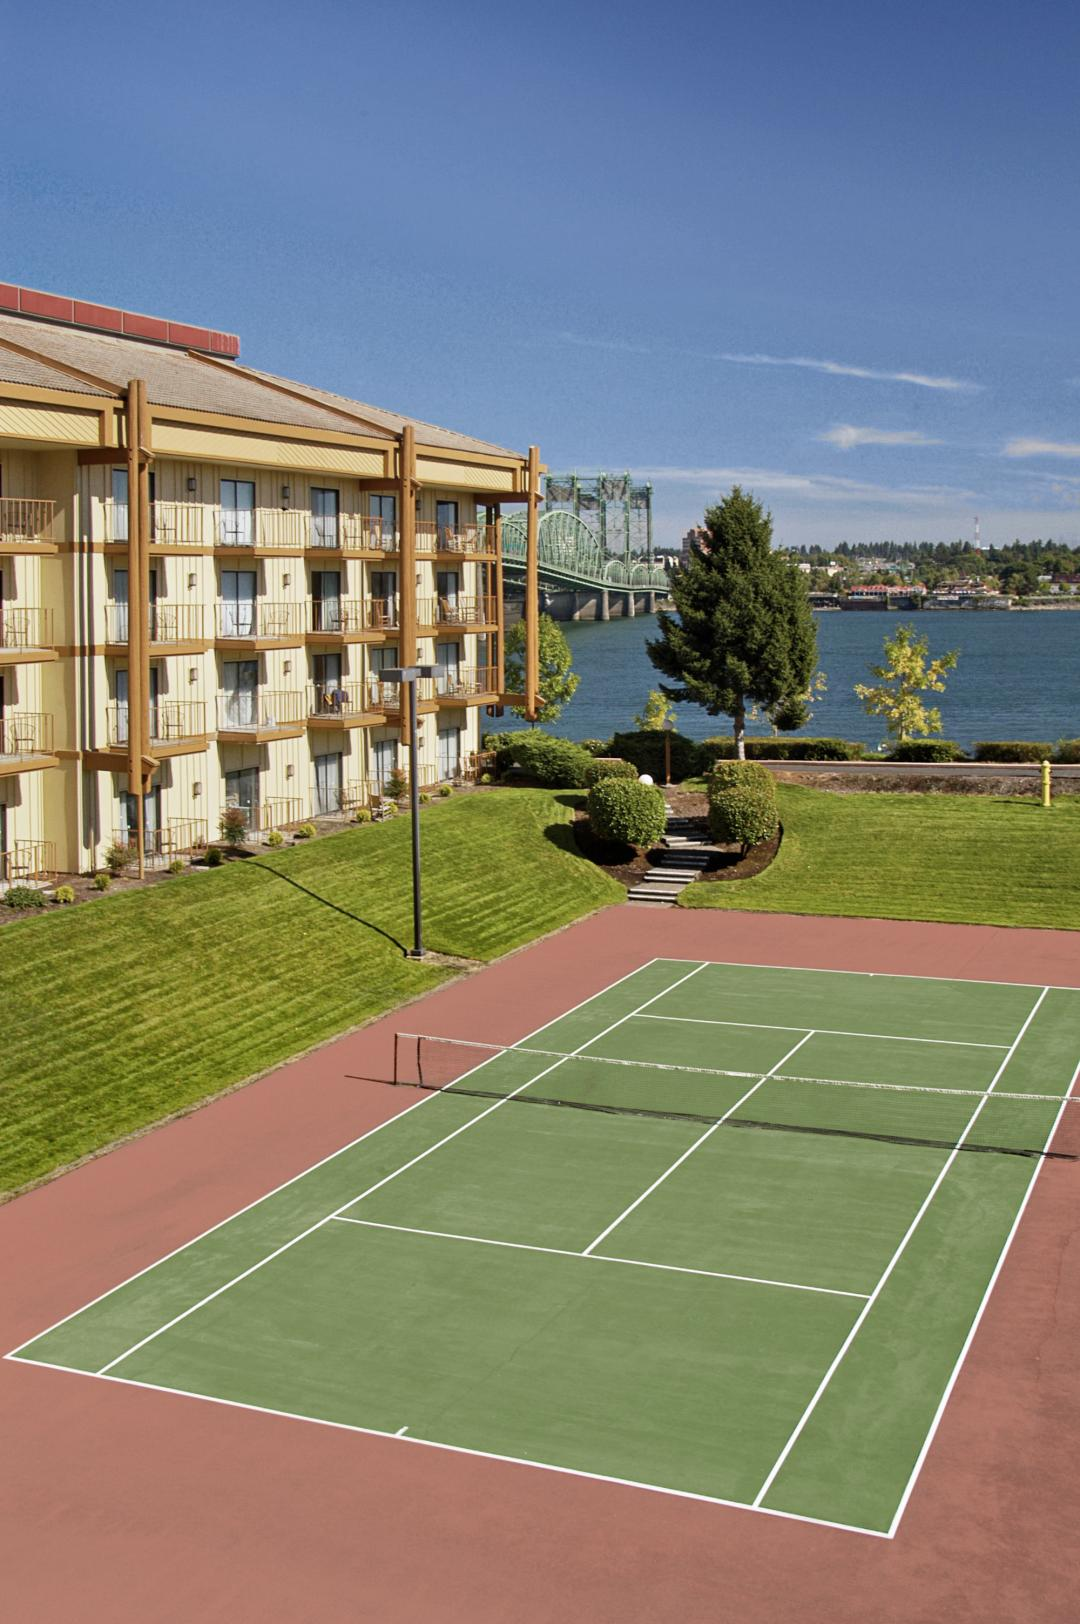 Tennis court at Red Lion on the River Jantzen Beach